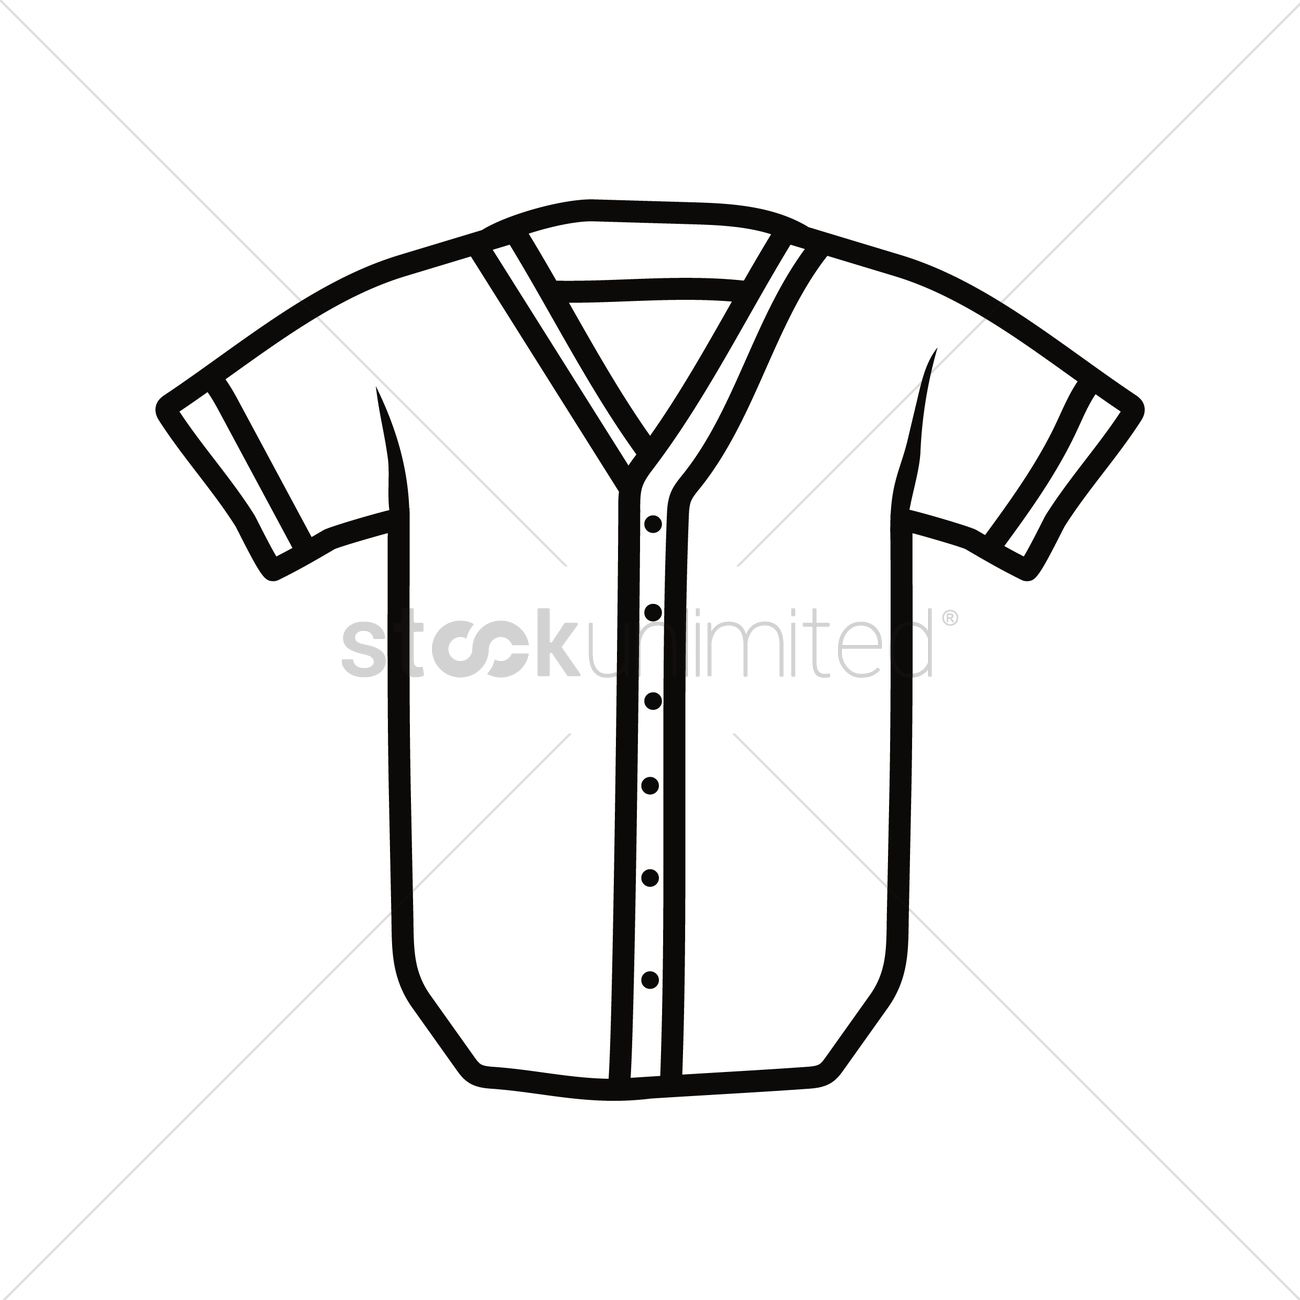 baseball jersey vector image 1987729 stockunlimited rh stockunlimited com baseball jersey clipart free printable baseball jersey clipart